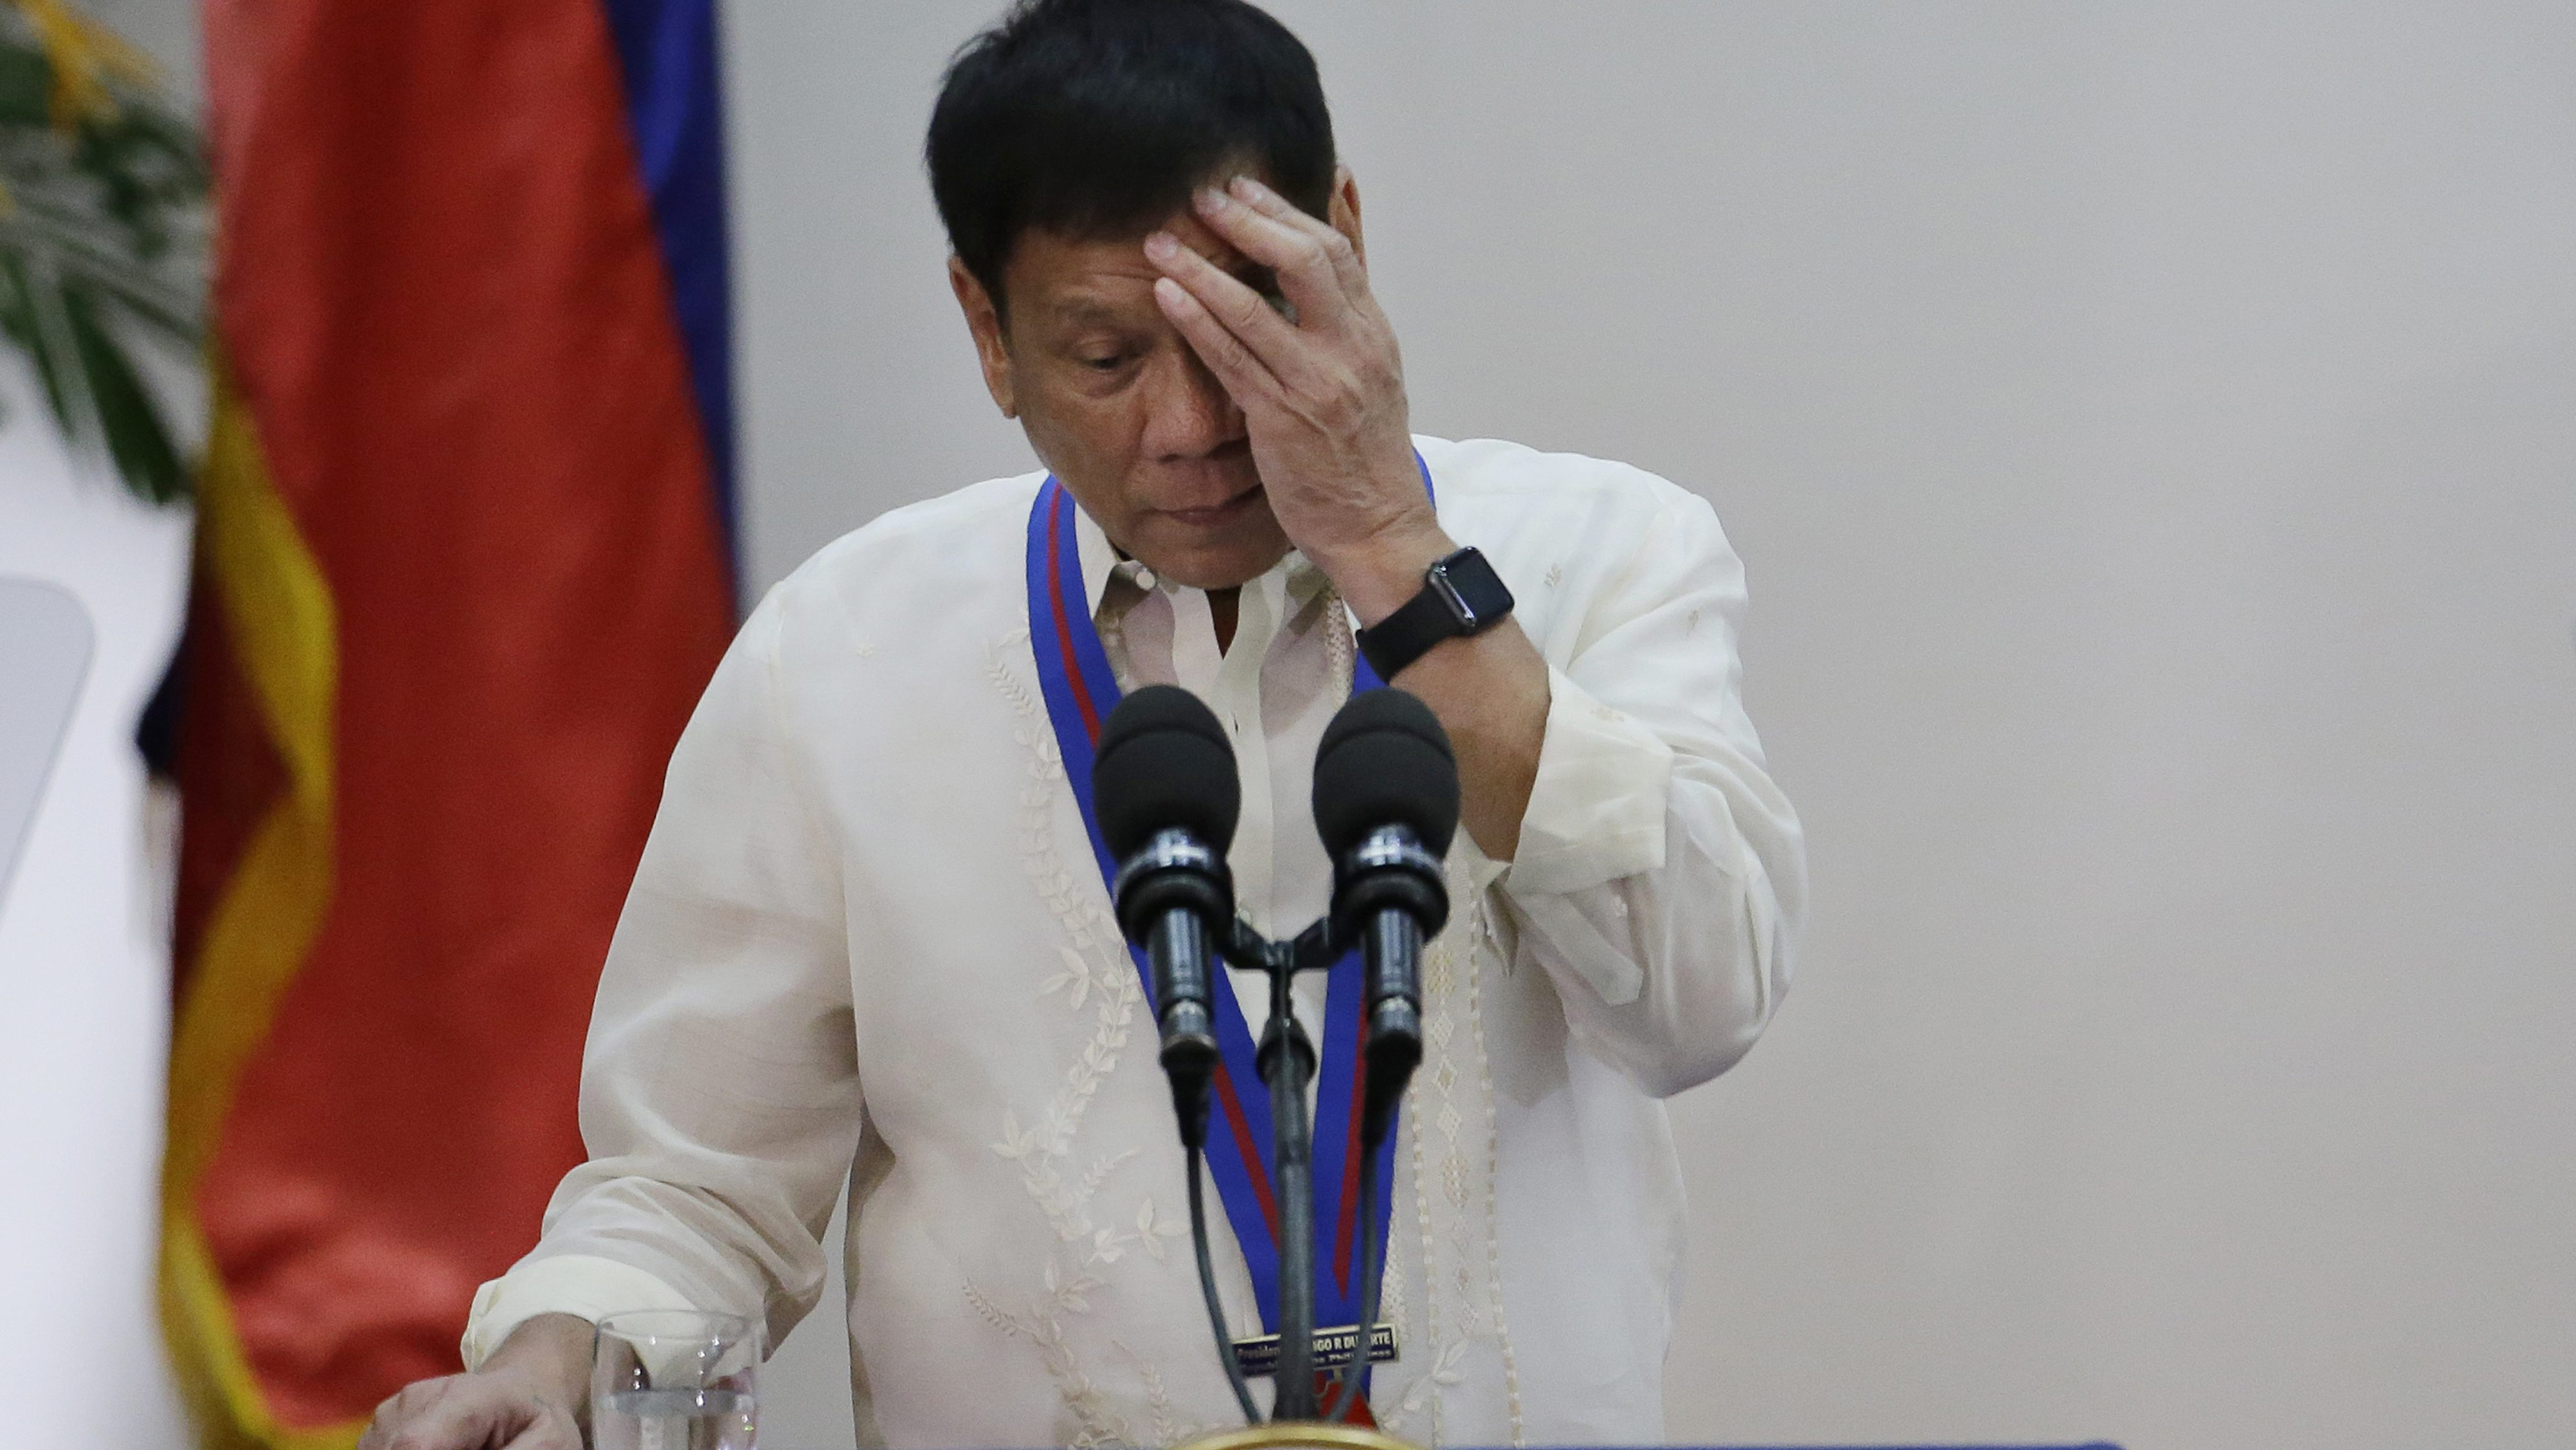 """Philippine President Rodrigo Duterte gestures during his speech at the """"Assumption of Command"""" right, of new Police Chief, Director General Ronald Dela Rosa at Camp Crame, Philippine National Police headquarters, in suburban Quezon city, Manila, Philippines on Friday, July 1, 2016. Duterte, who was sworn in as the Philippines' 16th president, has given himself a colossal campaign promise to fulfill, eradicating crime especially drug trafficking, smuggling, rapes and murder in three to six months."""